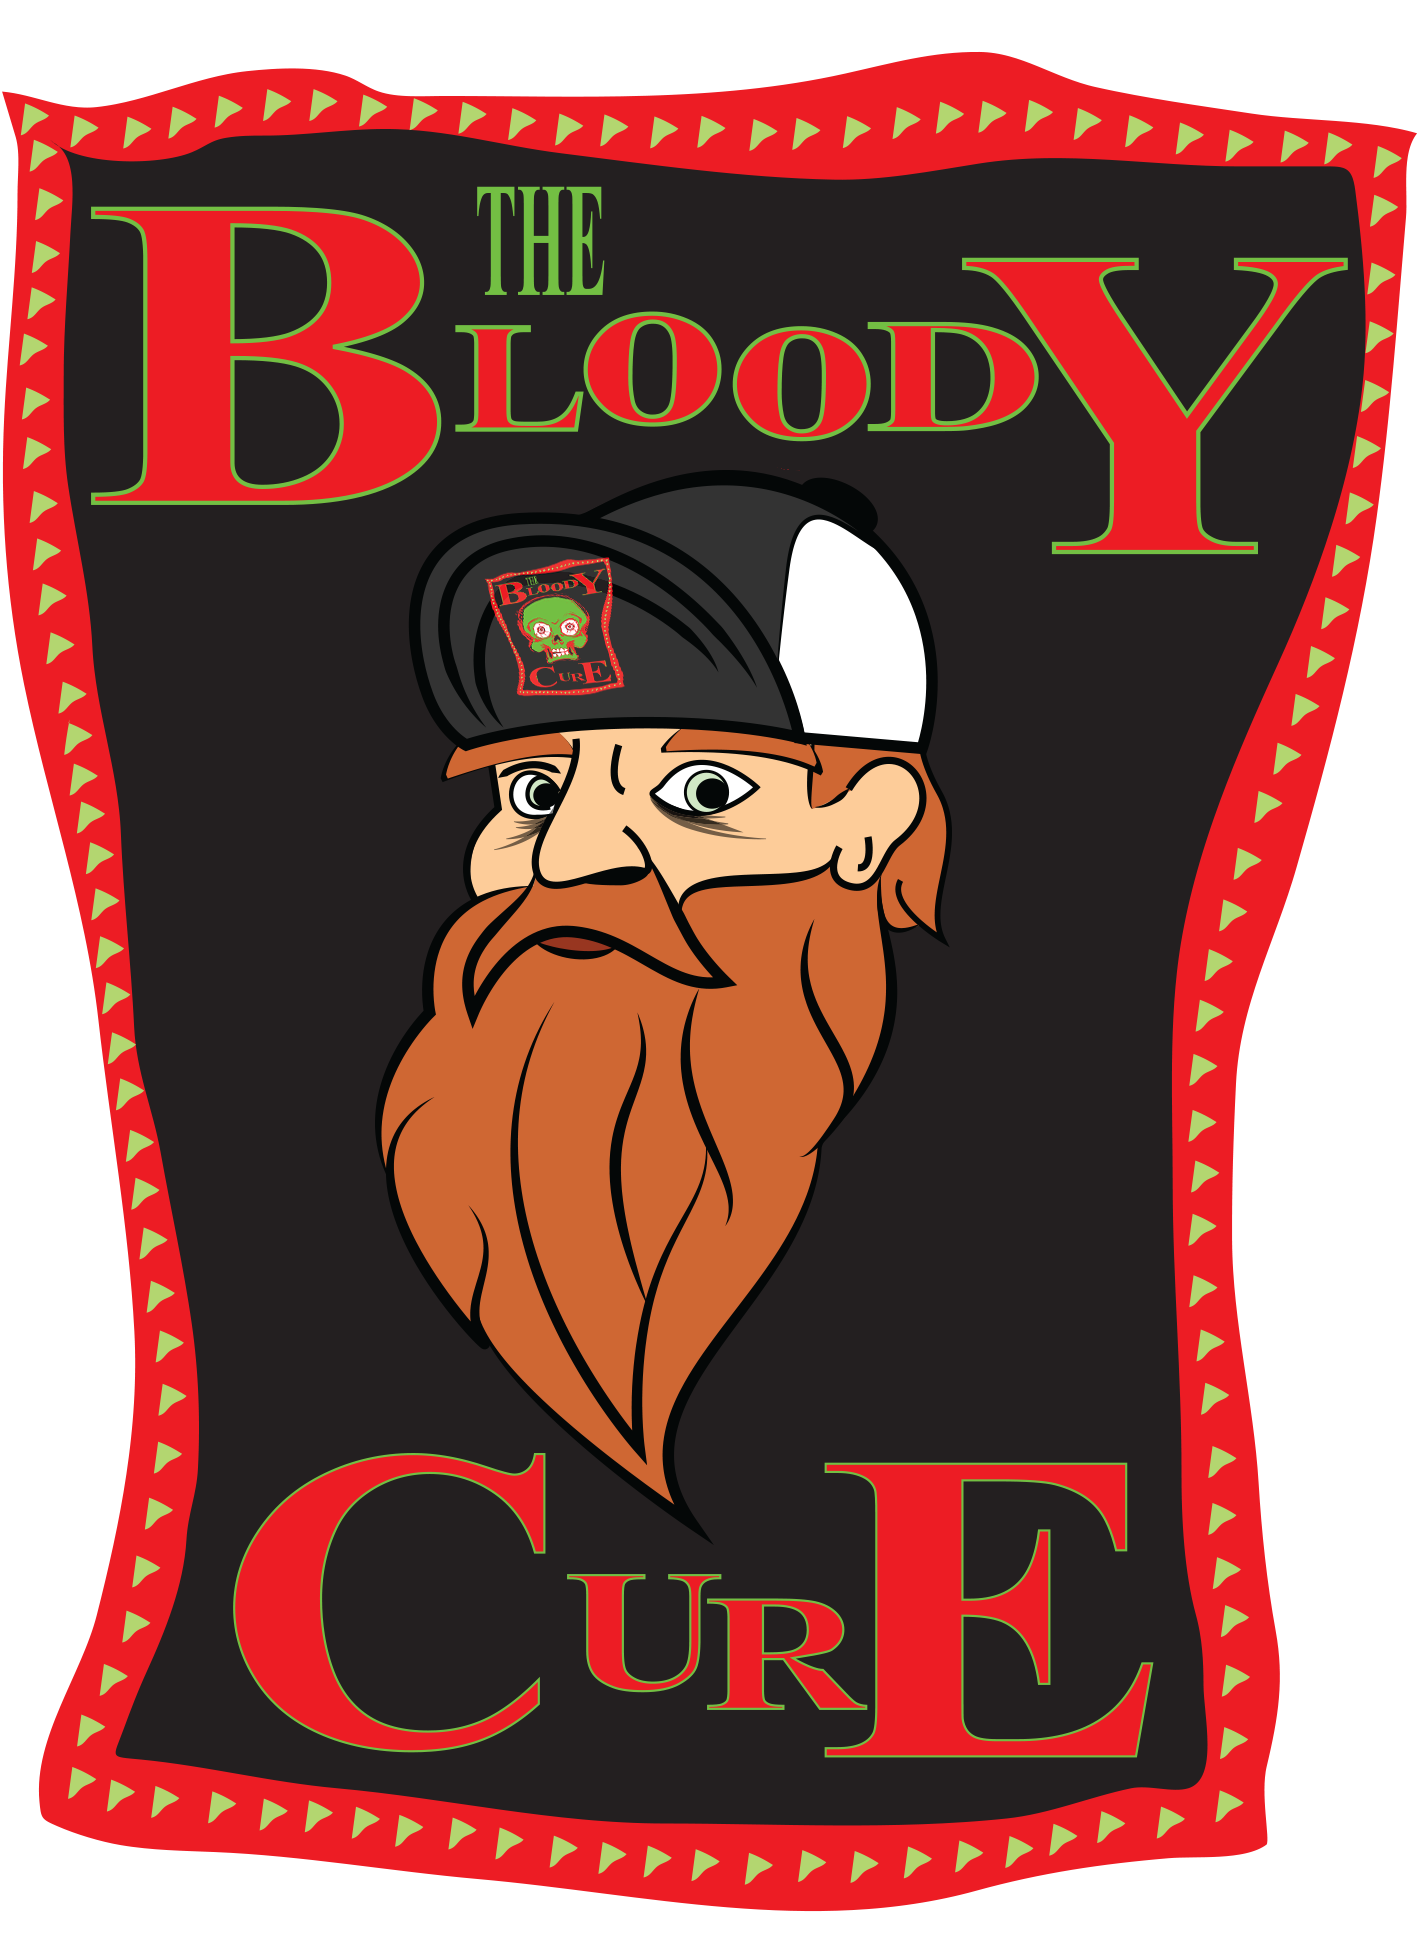 BLOODY WOODY LOGO